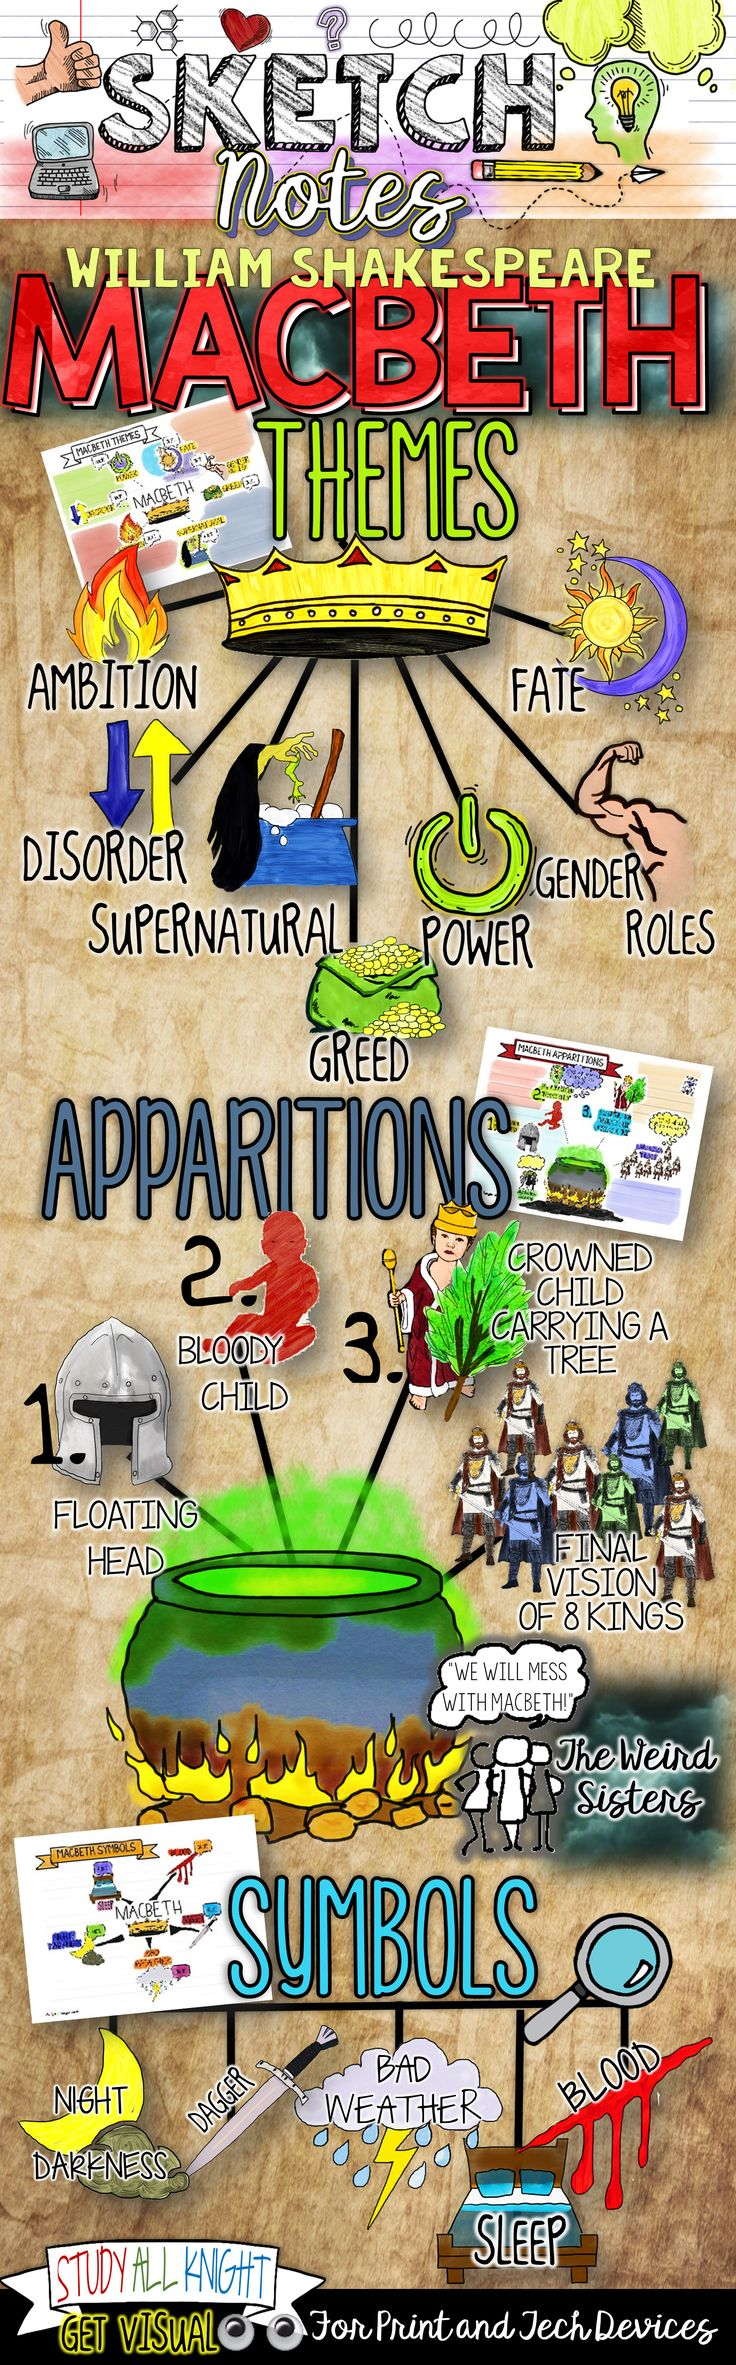 Shakespeare's Macbeth is loaded with imagery. So why not use a great learning strategy for visual learning? This Macbeth teaching resource for themes, symbols, and apparitions is creative and filled with opportunities for differentiation. Your students will use the graphic note organizers to find quotes for textual evidence and discover a deeper meaning of Shakespeare's tragedy. The teacher notes give a great Macbeth summary and are useful during guided instruction. ($)